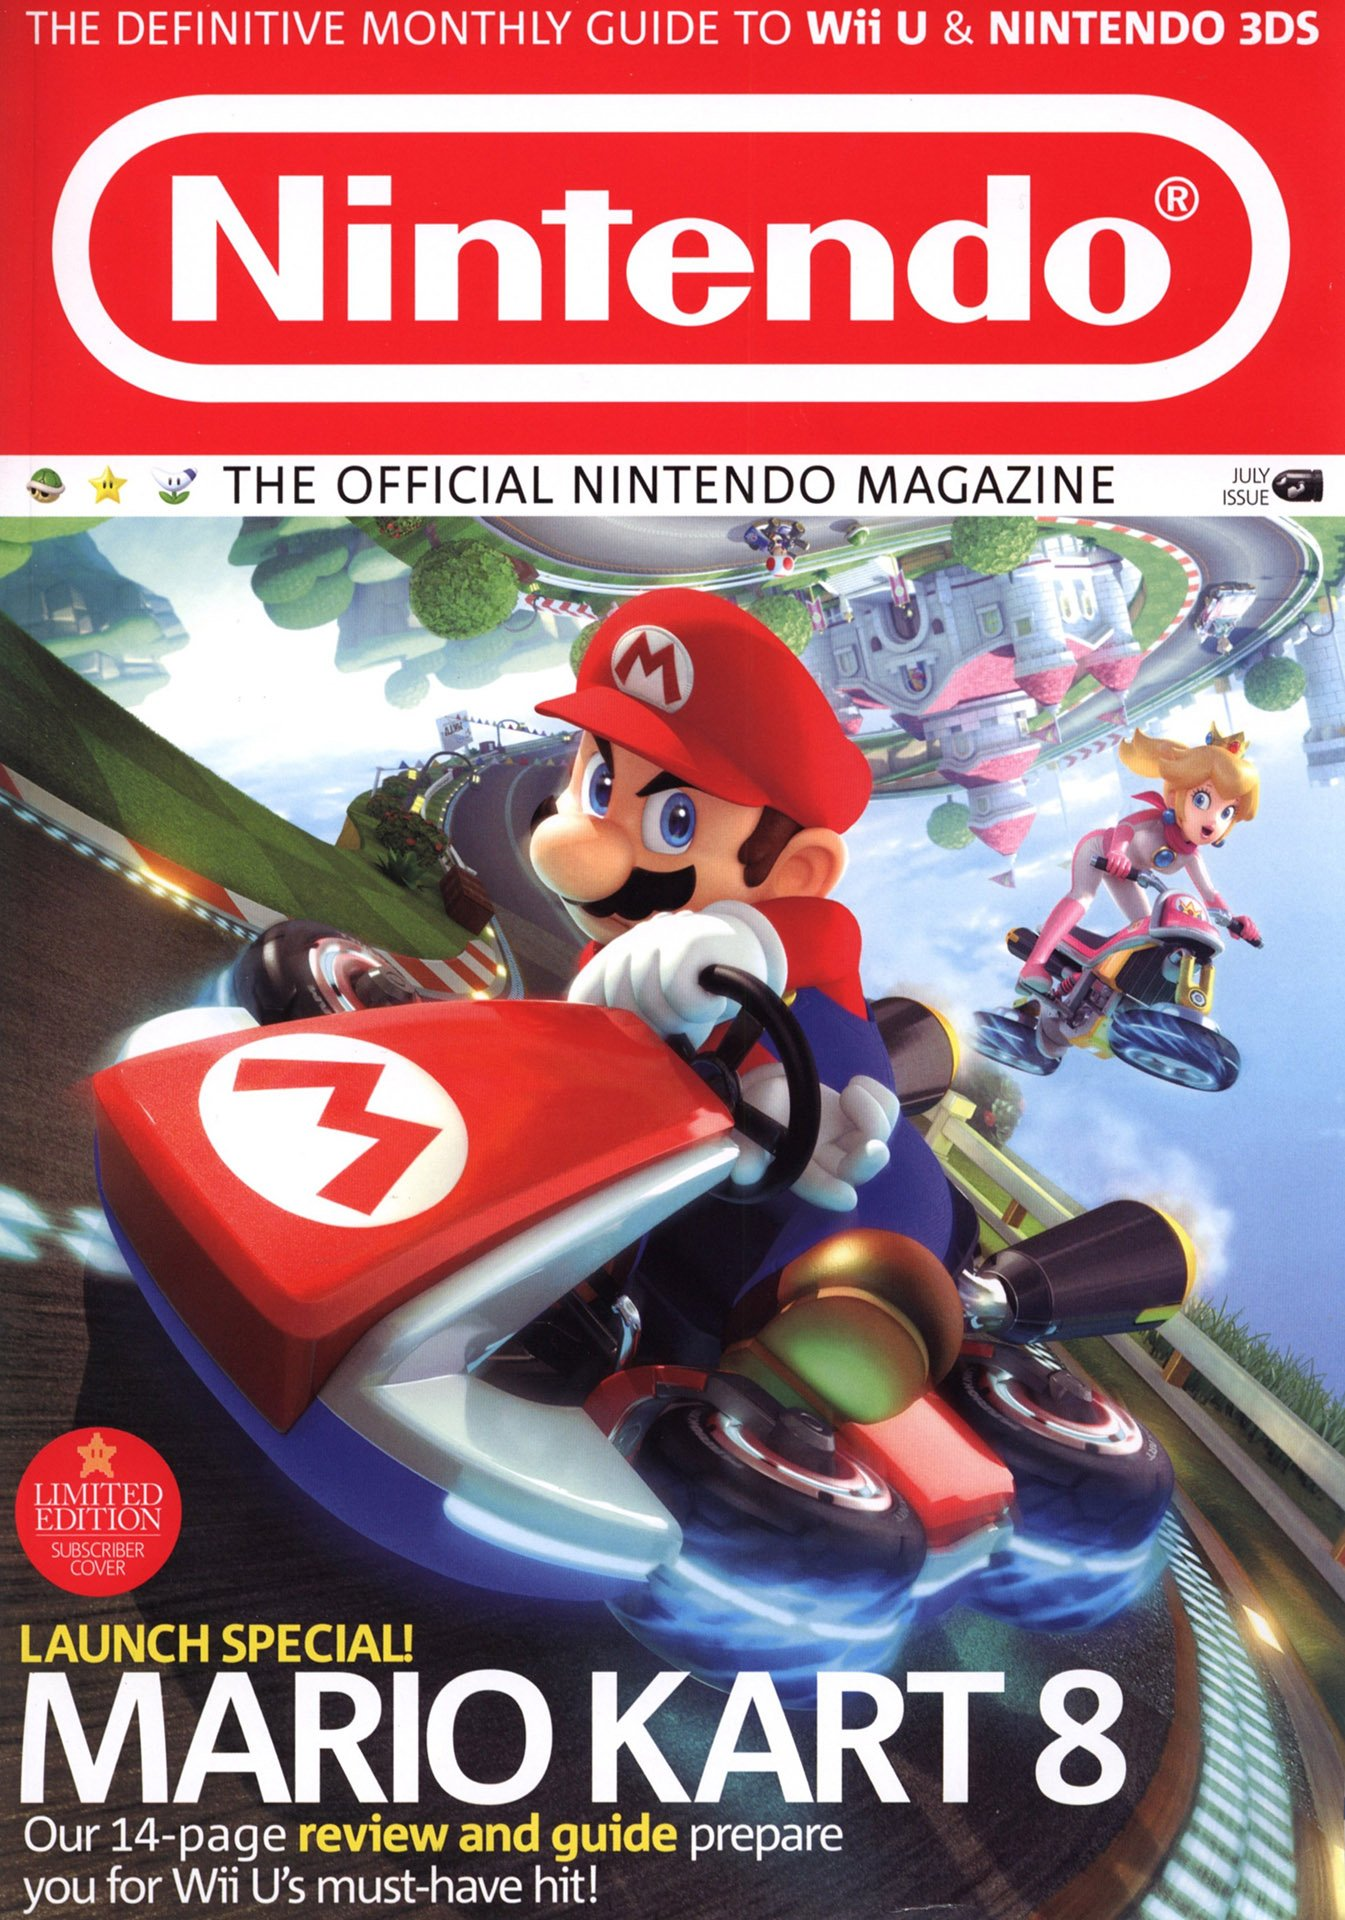 Official Nintendo Magazine 109 (July 2014) (subscriber cover)